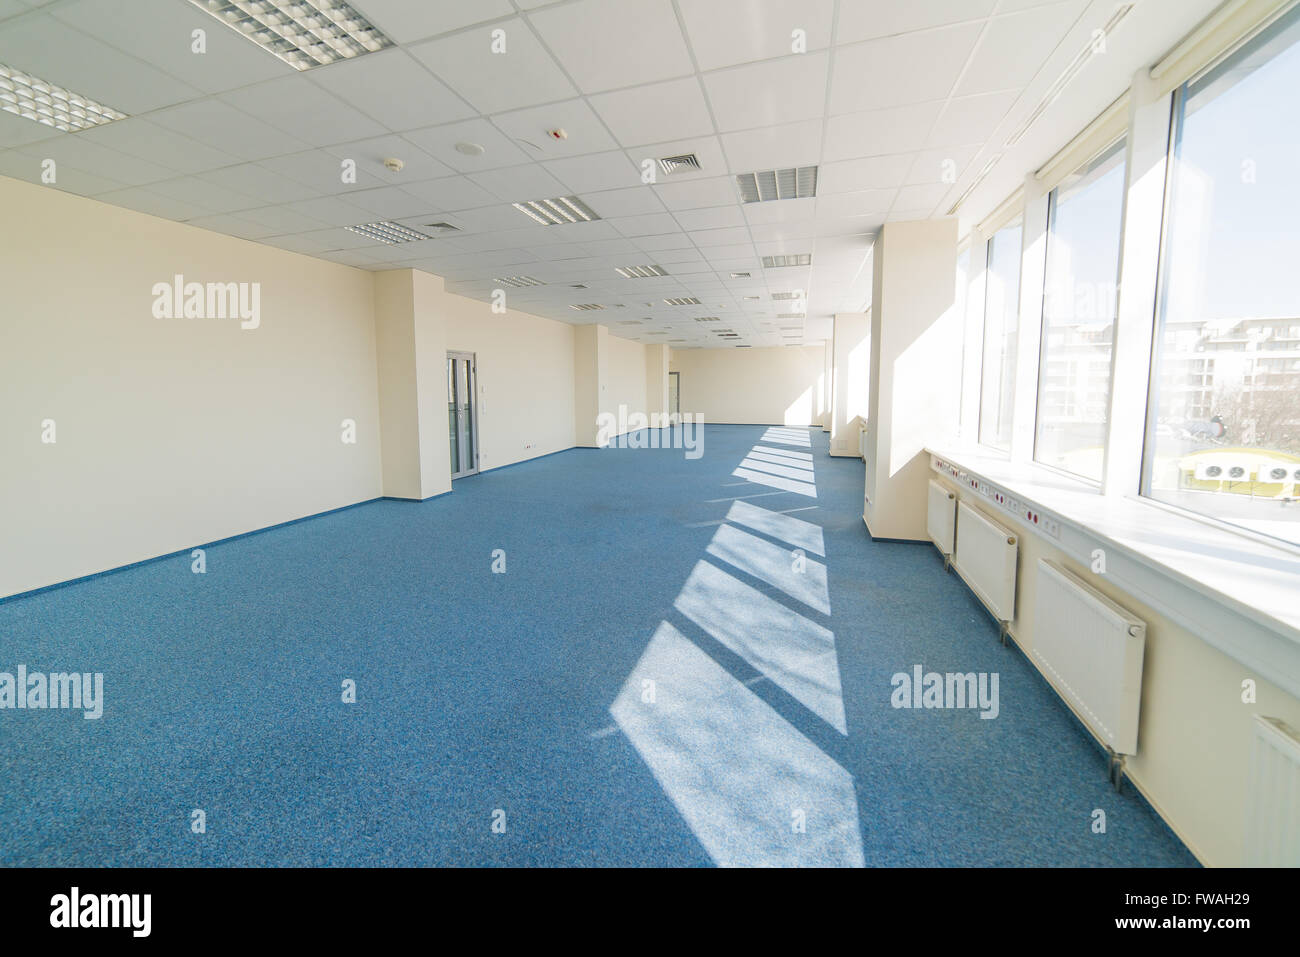 blue glass office building stock photos blue glass office building stock images alamy. Black Bedroom Furniture Sets. Home Design Ideas